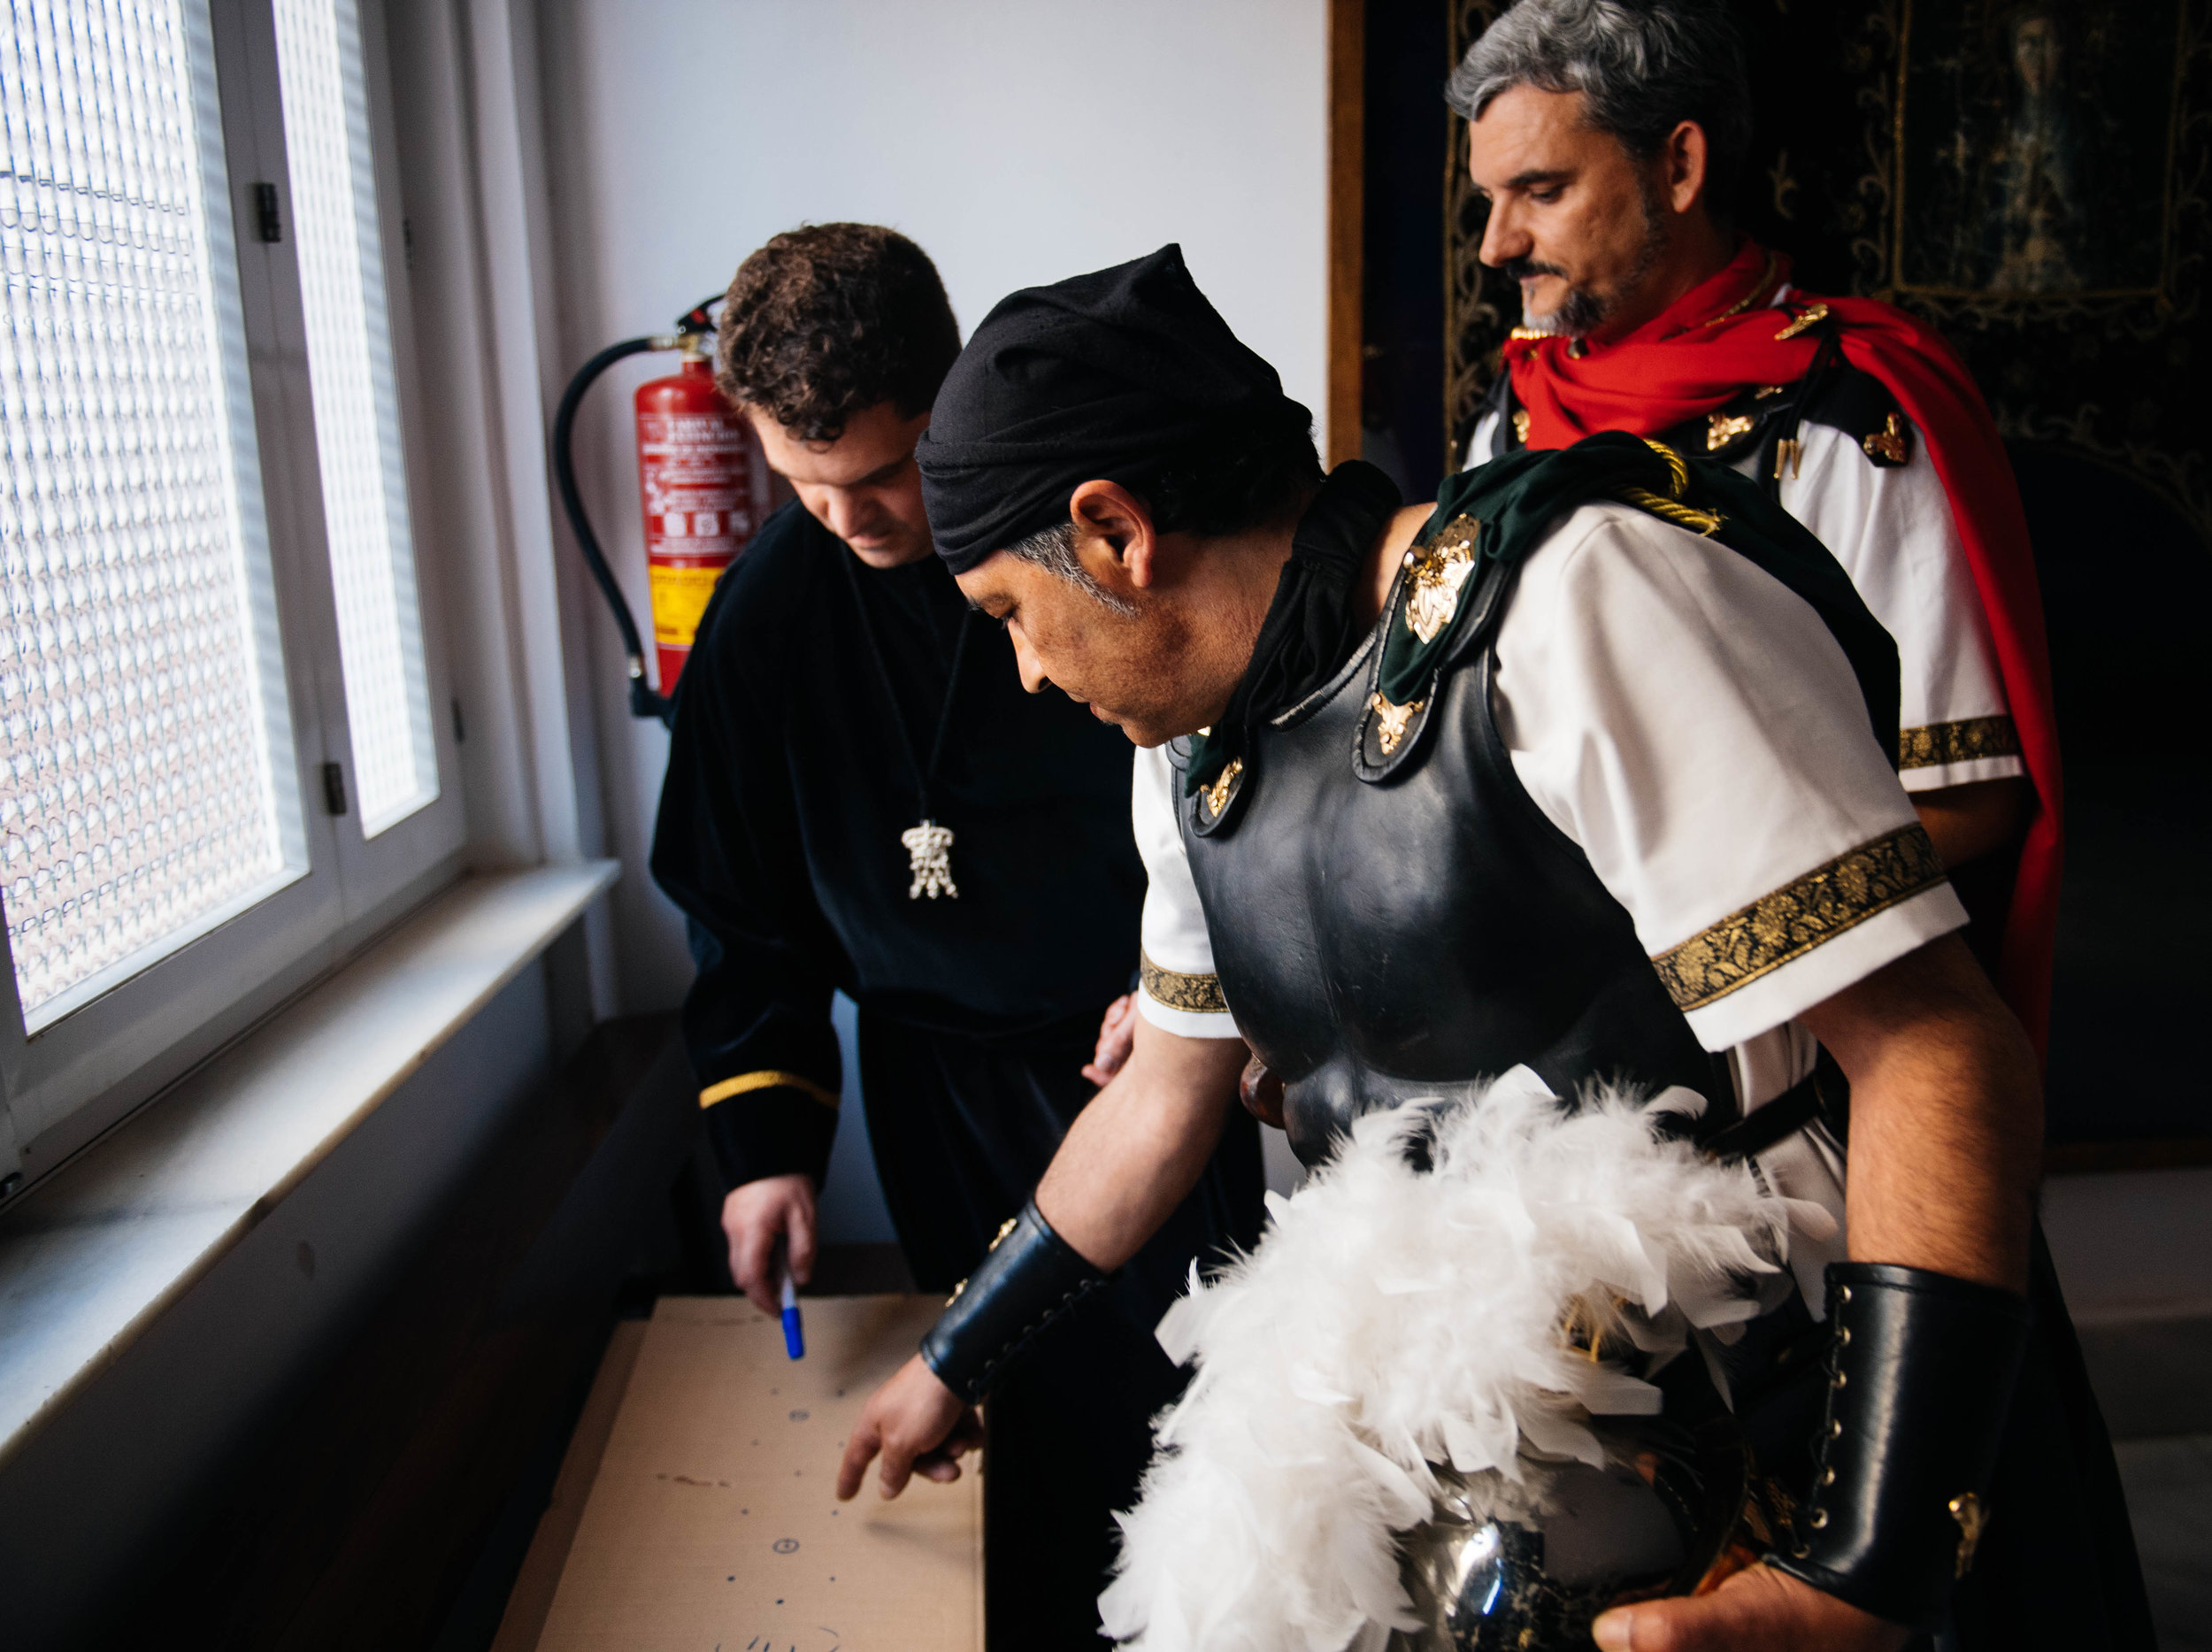 Antonio Martínez makes a sketch and explained to the roman legionnaires how they should walk during the procession.